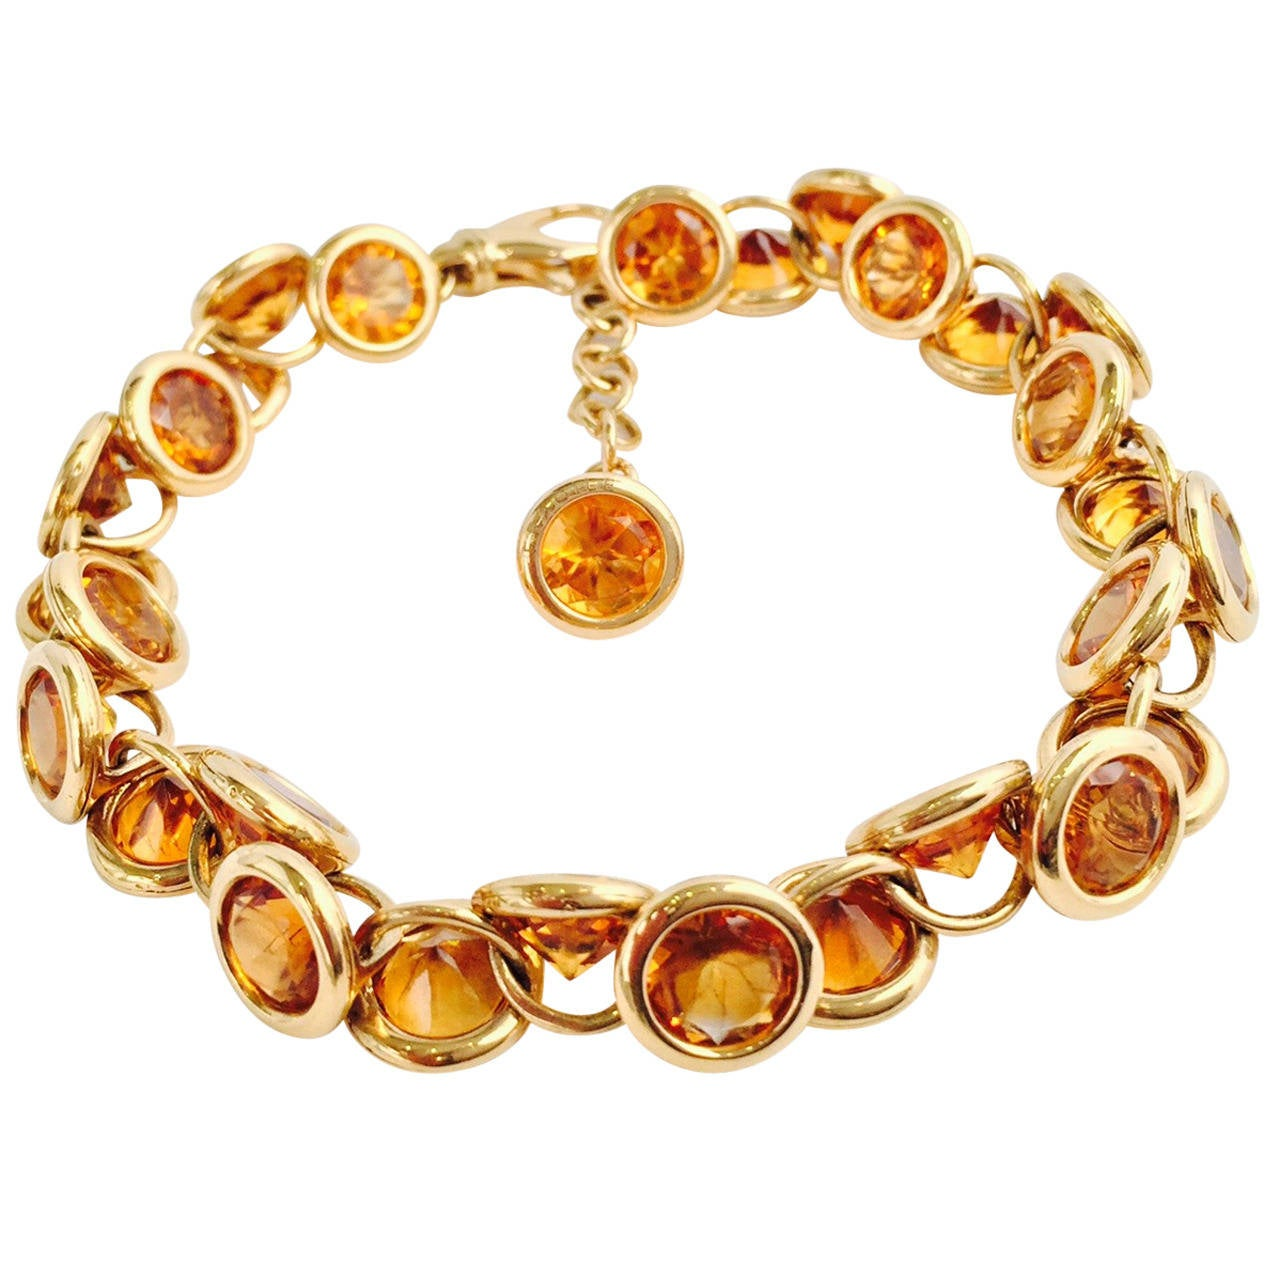 Fasano Citrine Gold Link Bracelet For Sale At 1stdibs